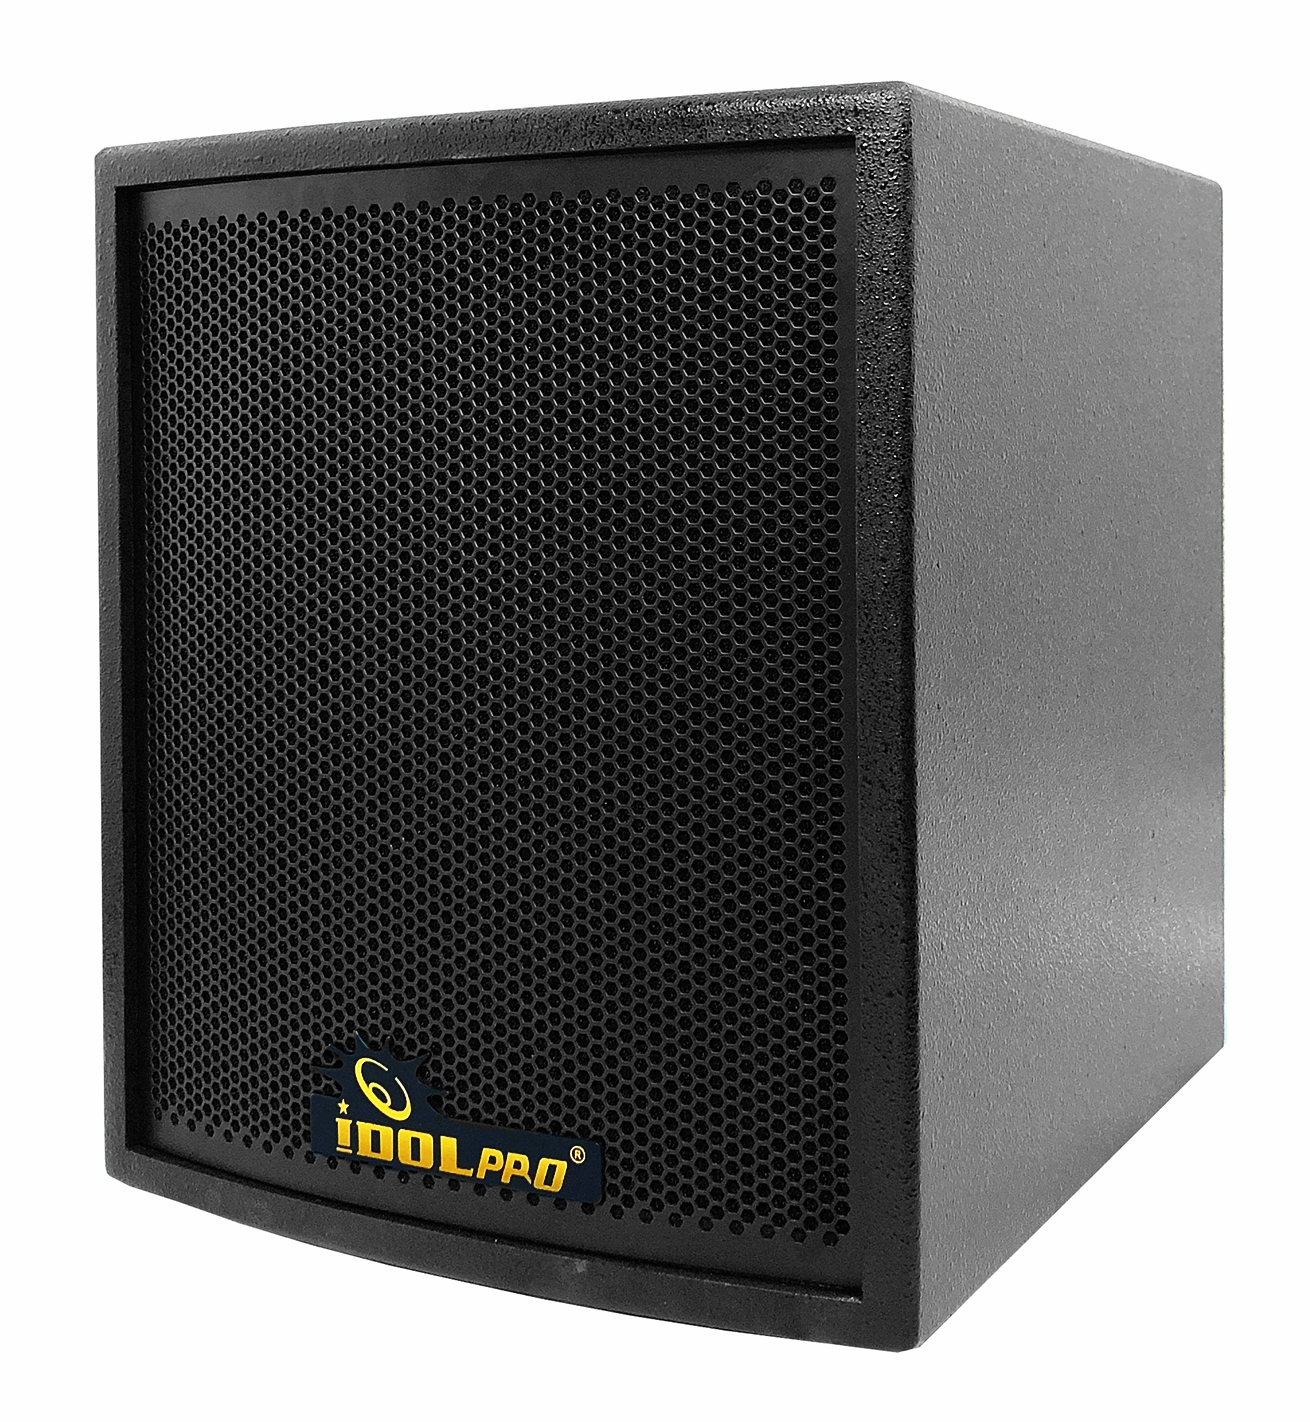 "IDOLpro SUB-07 1000W 12"" High Power Active Subwoofer  <font color="" orange""><b>NEW & IMPROVED 2021</b></font>"